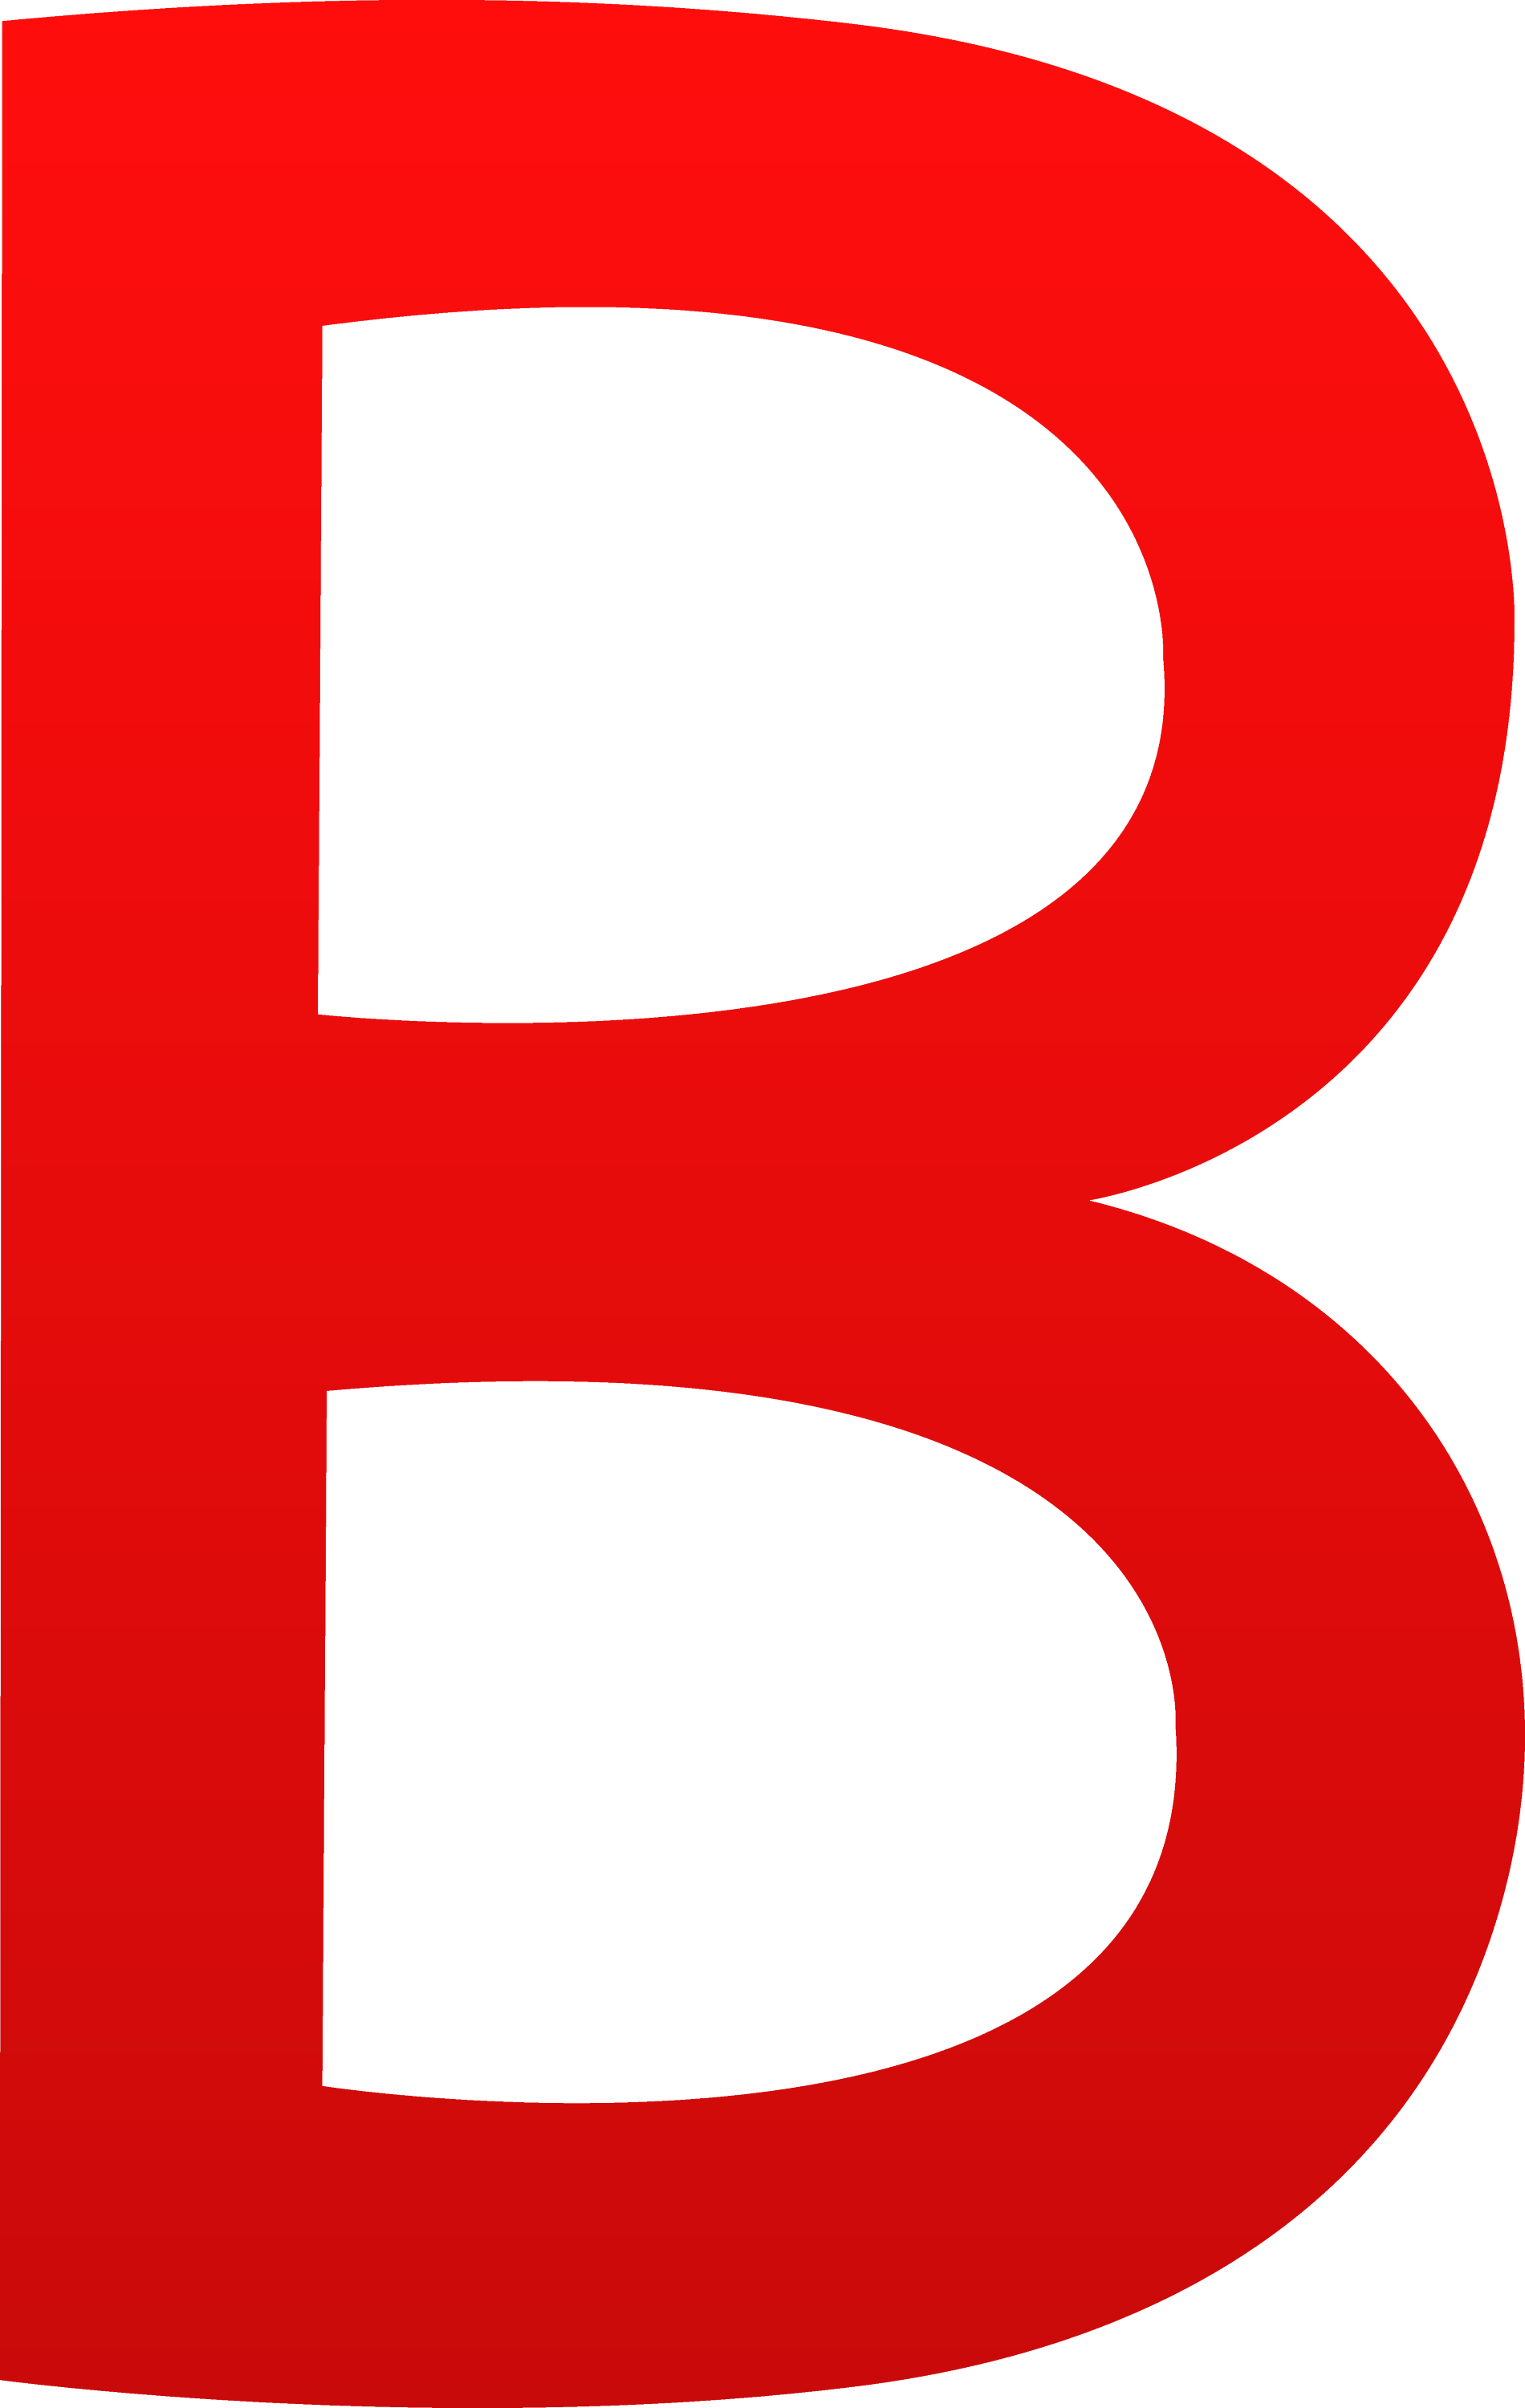 The Letter B Free Clip Art